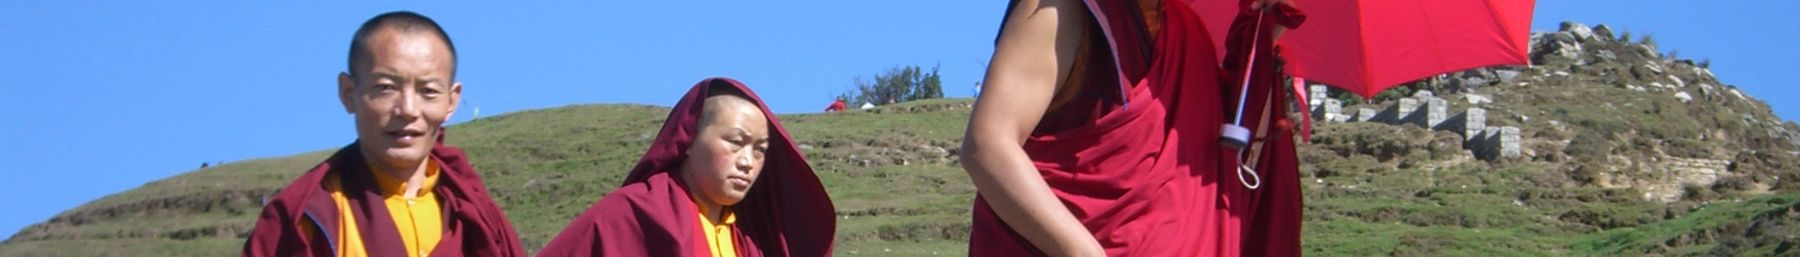 Tibetan monks at Bir-Billing